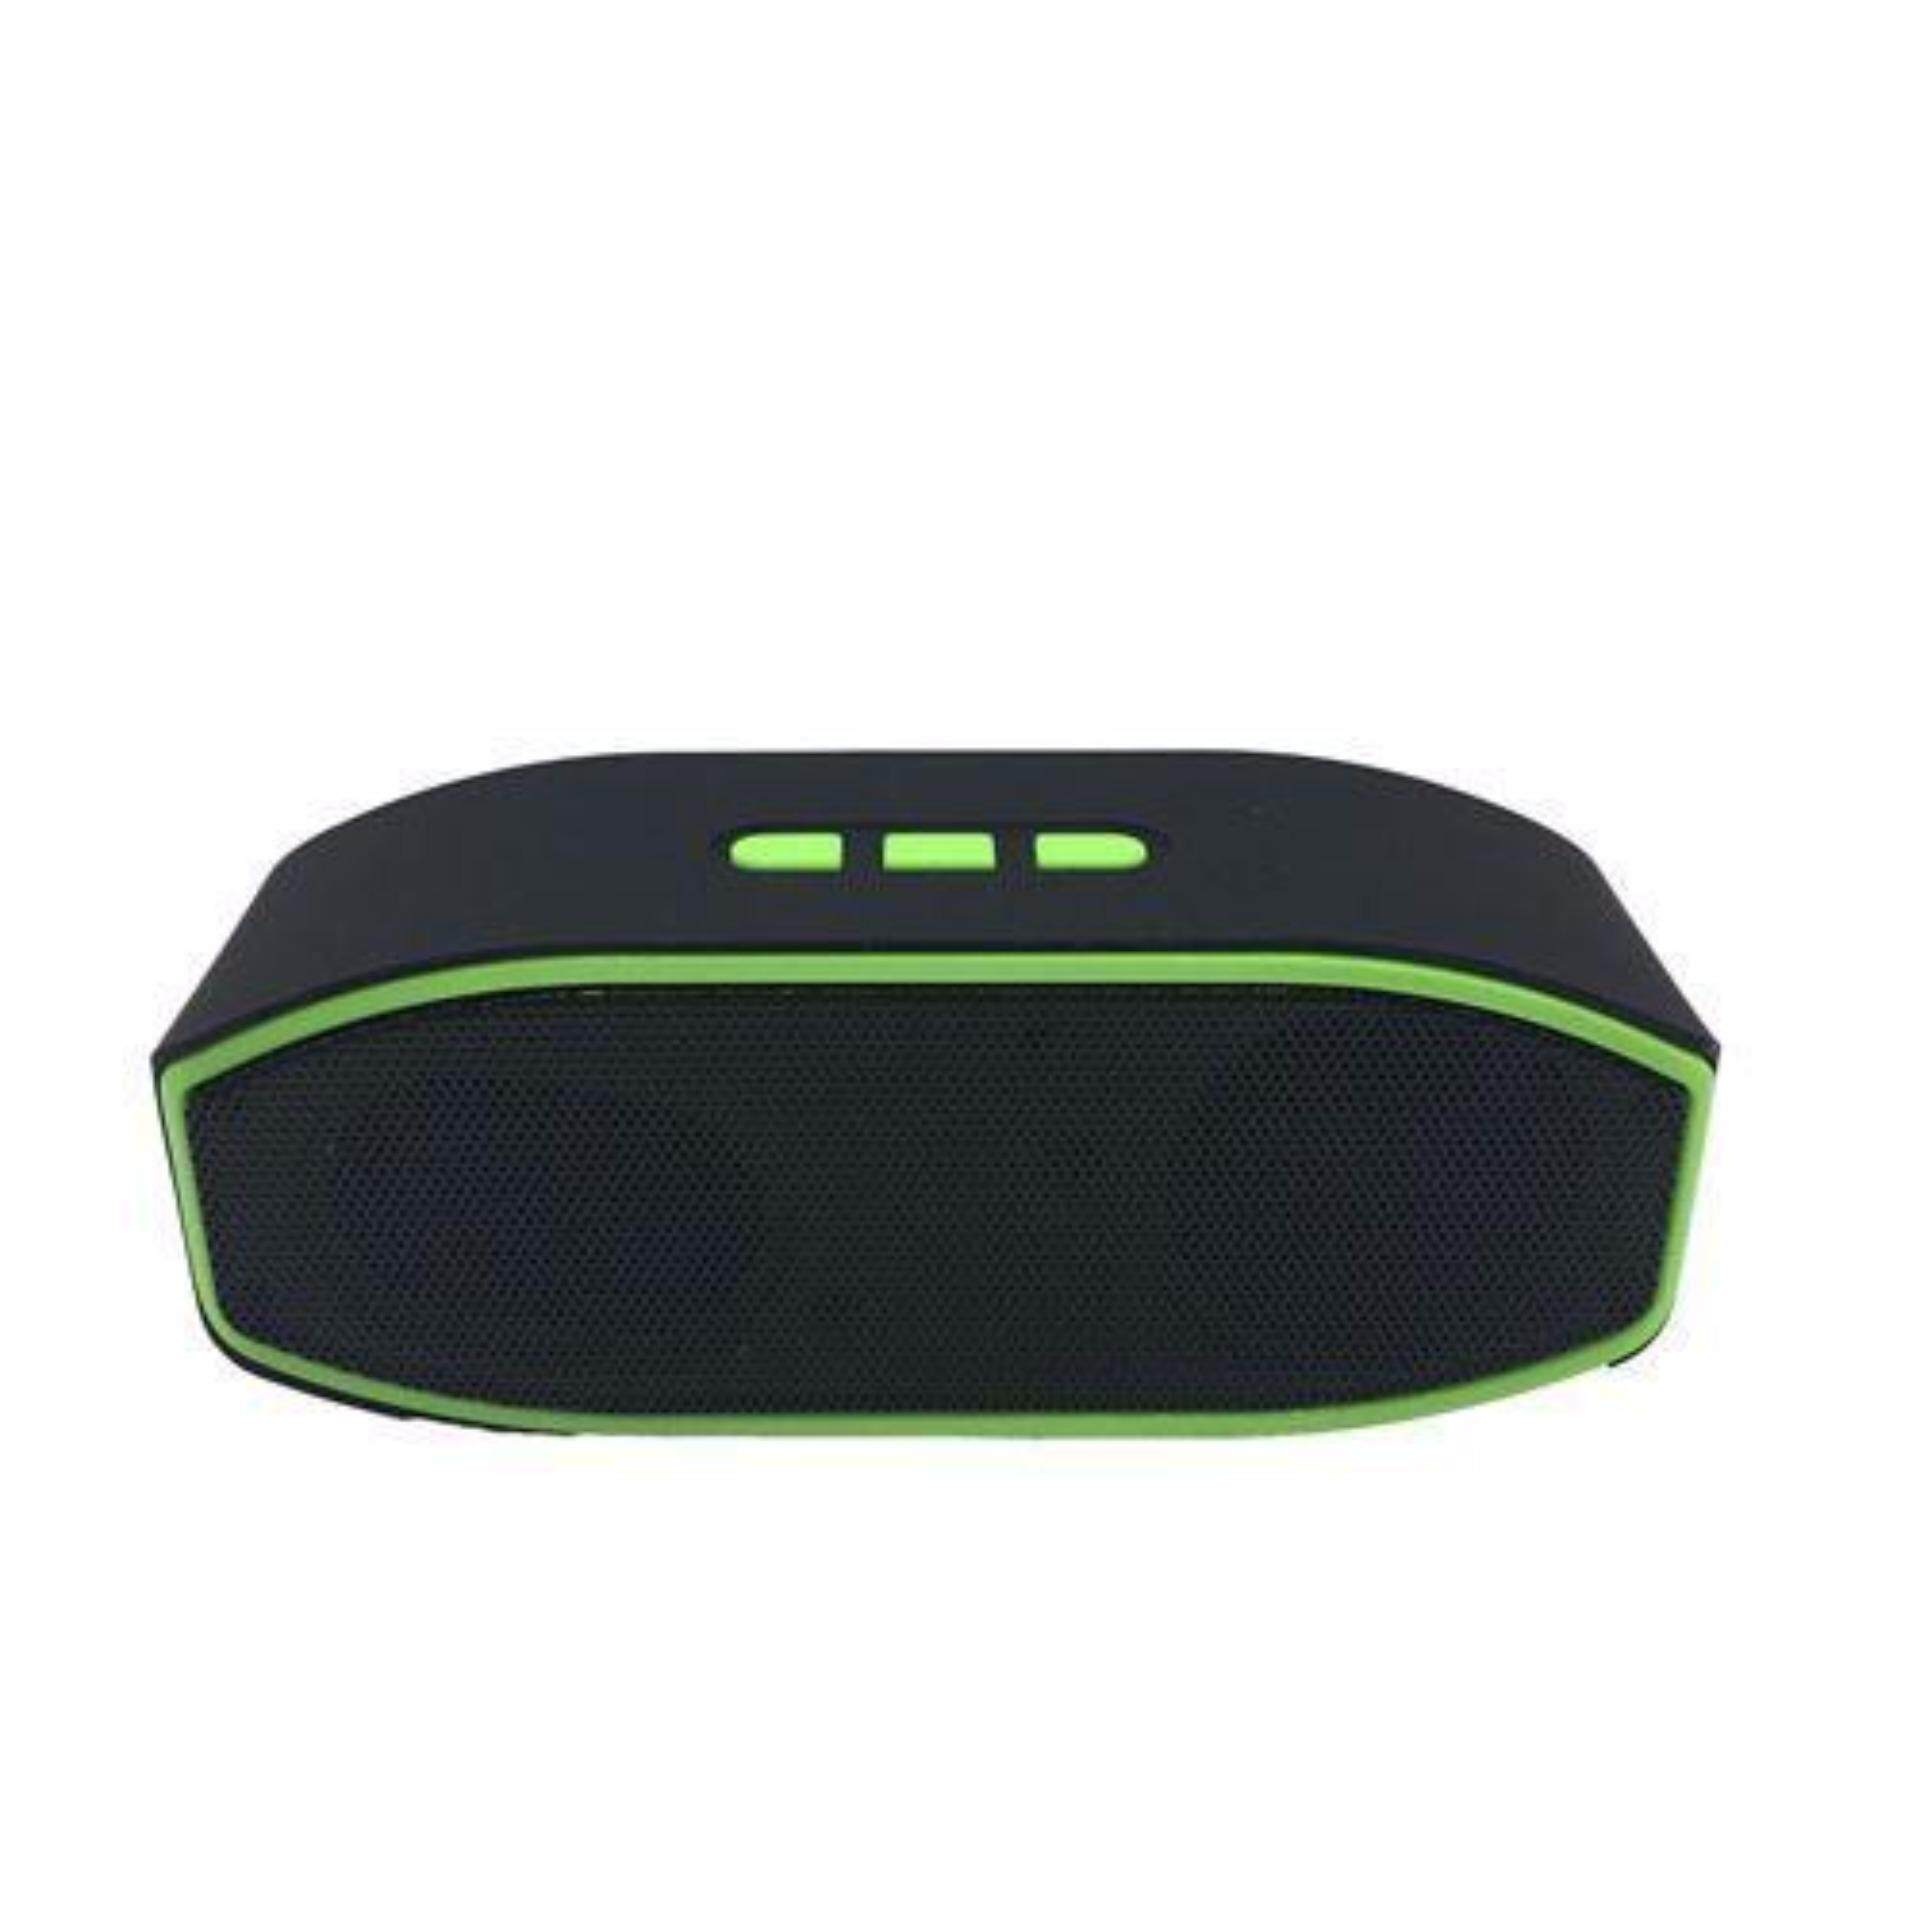 J2026 Mini Wireless Speaker (Green)